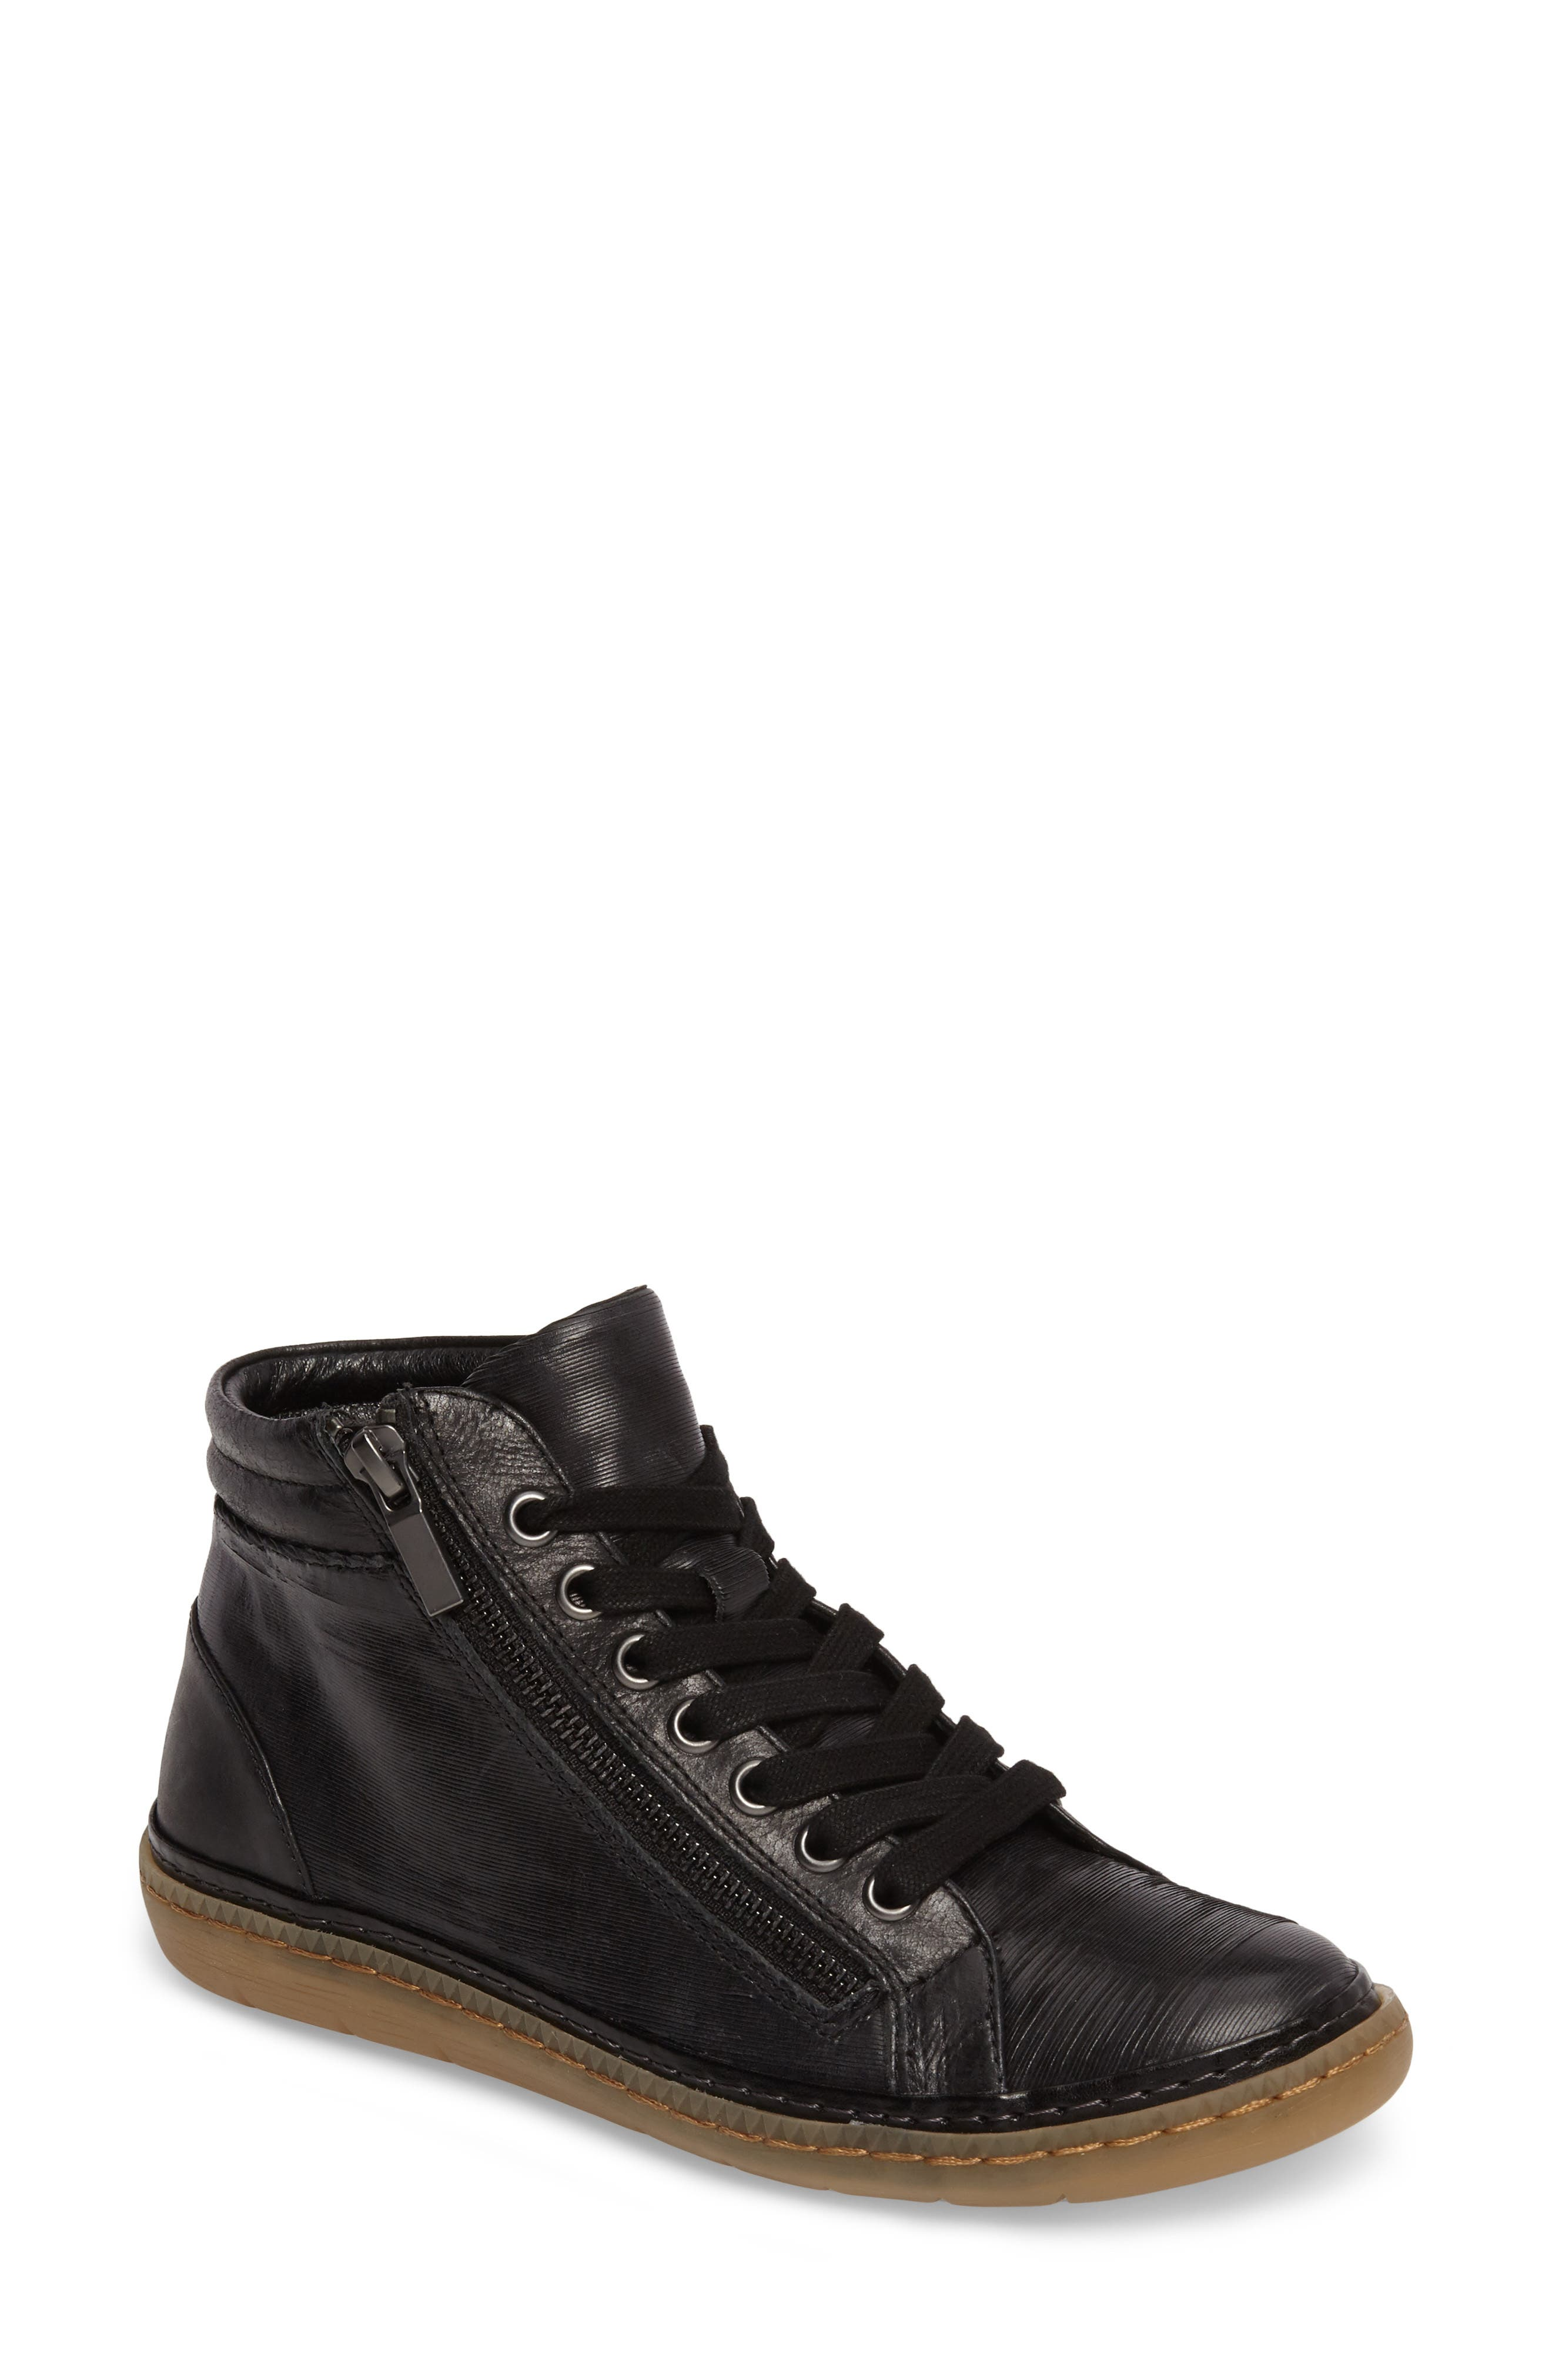 Annaleigh High Top Sneaker,                         Main,                         color, BLACK LEATHER